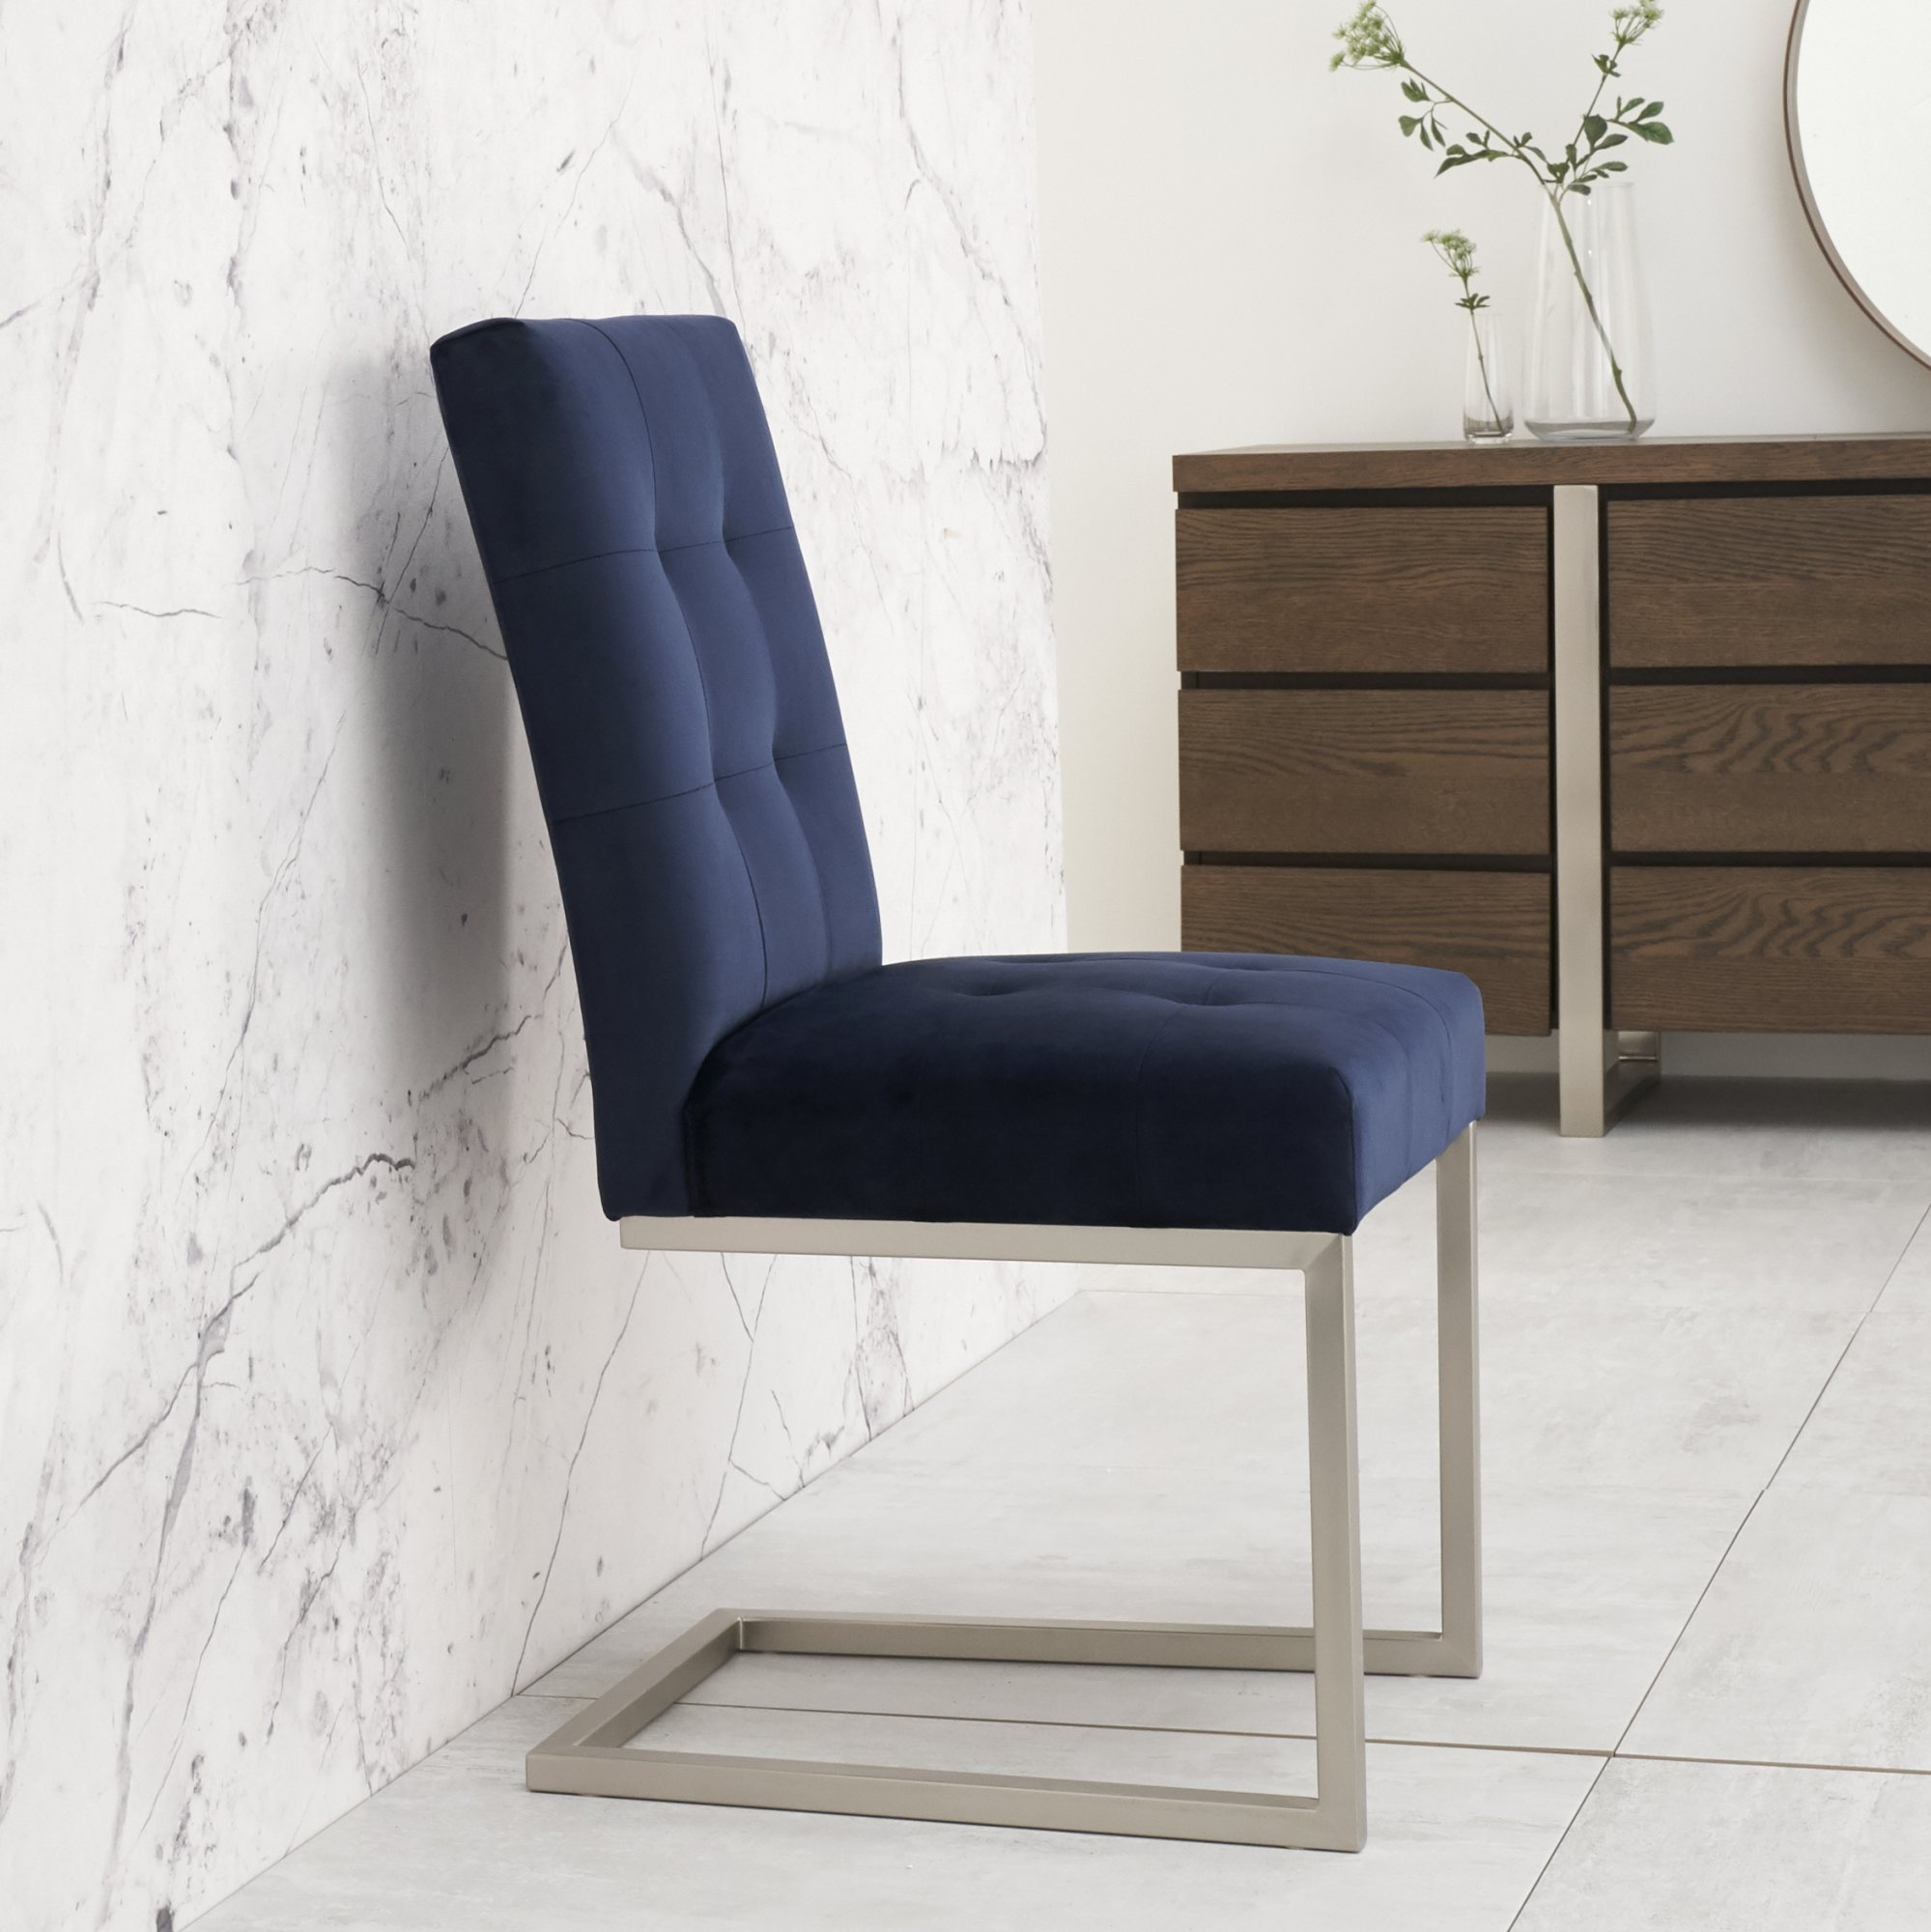 BRINDISI BLUE DINING CHAIR - SIDE DETAIL